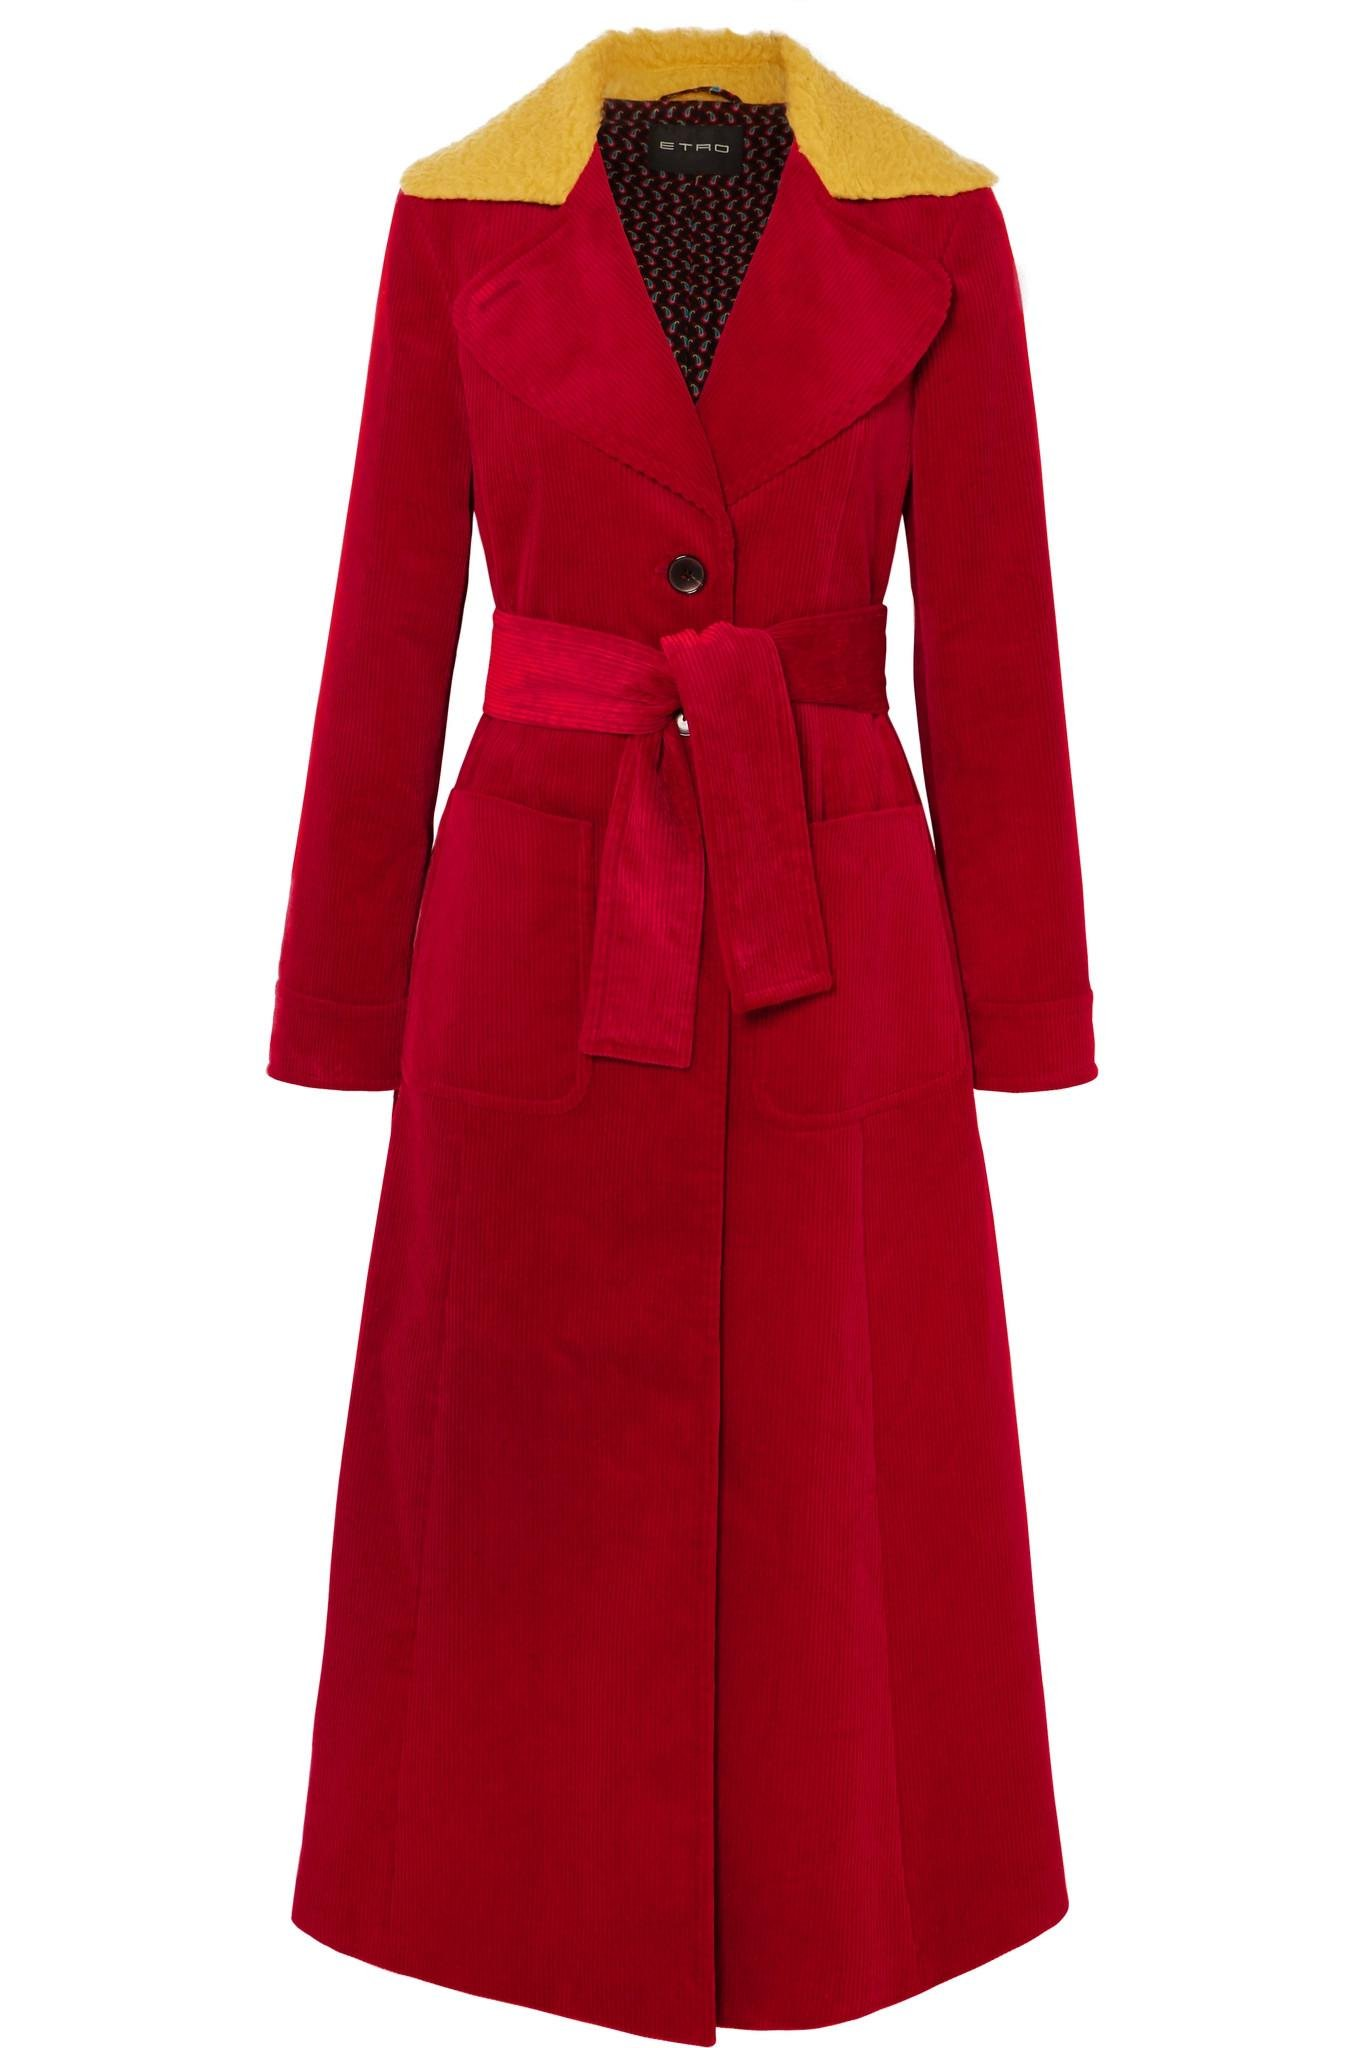 990c77b58037 Lyst - Etro Faux Shearling-trimmed Cotton-corduroy Coat in Red